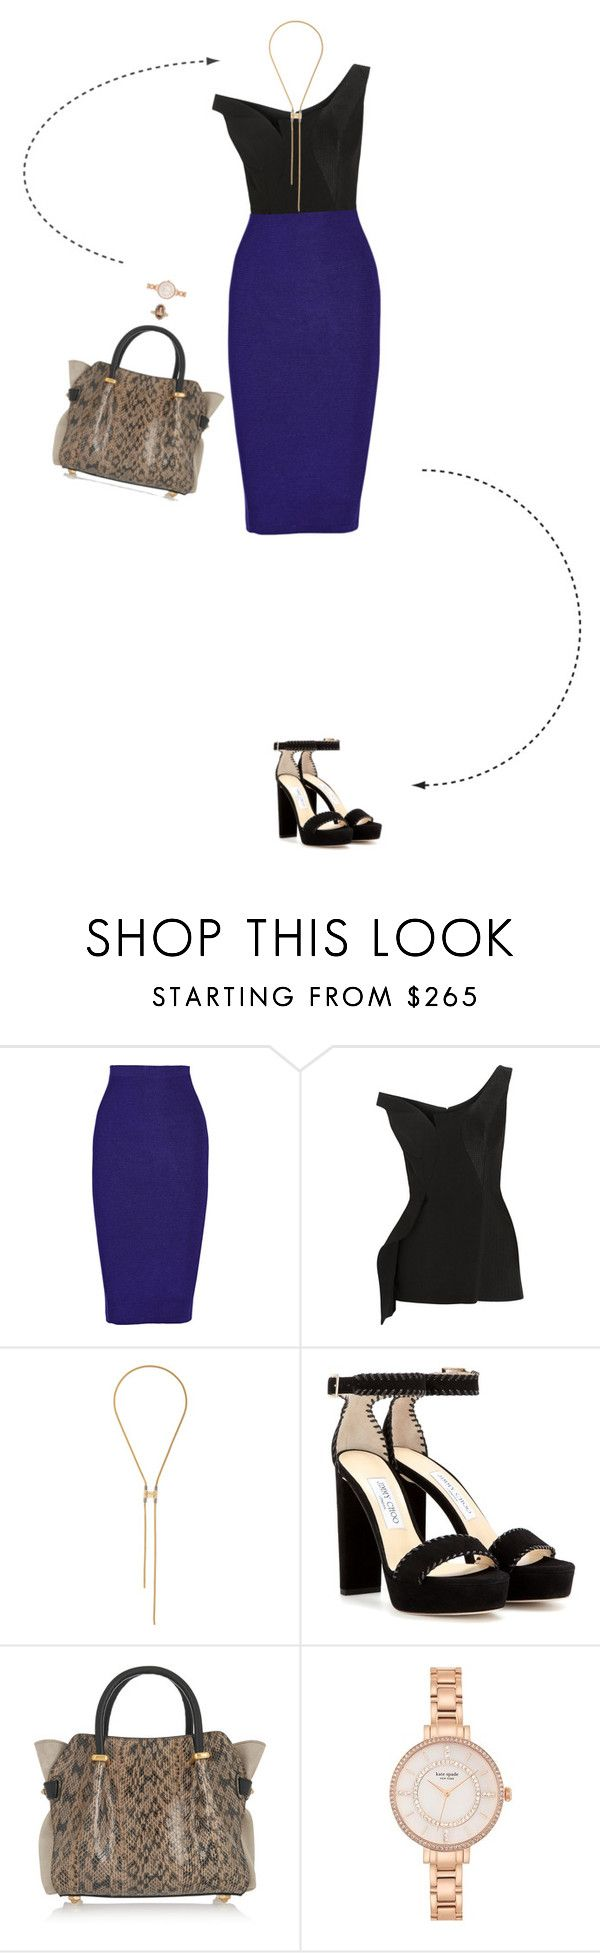 """BTY"" by lory-vicky ❤ liked on Polyvore featuring Cushnie Et Ochs, STELLA McCARTNEY, Lanvin, Jimmy Choo, Nina Ricci and Kate Spade"